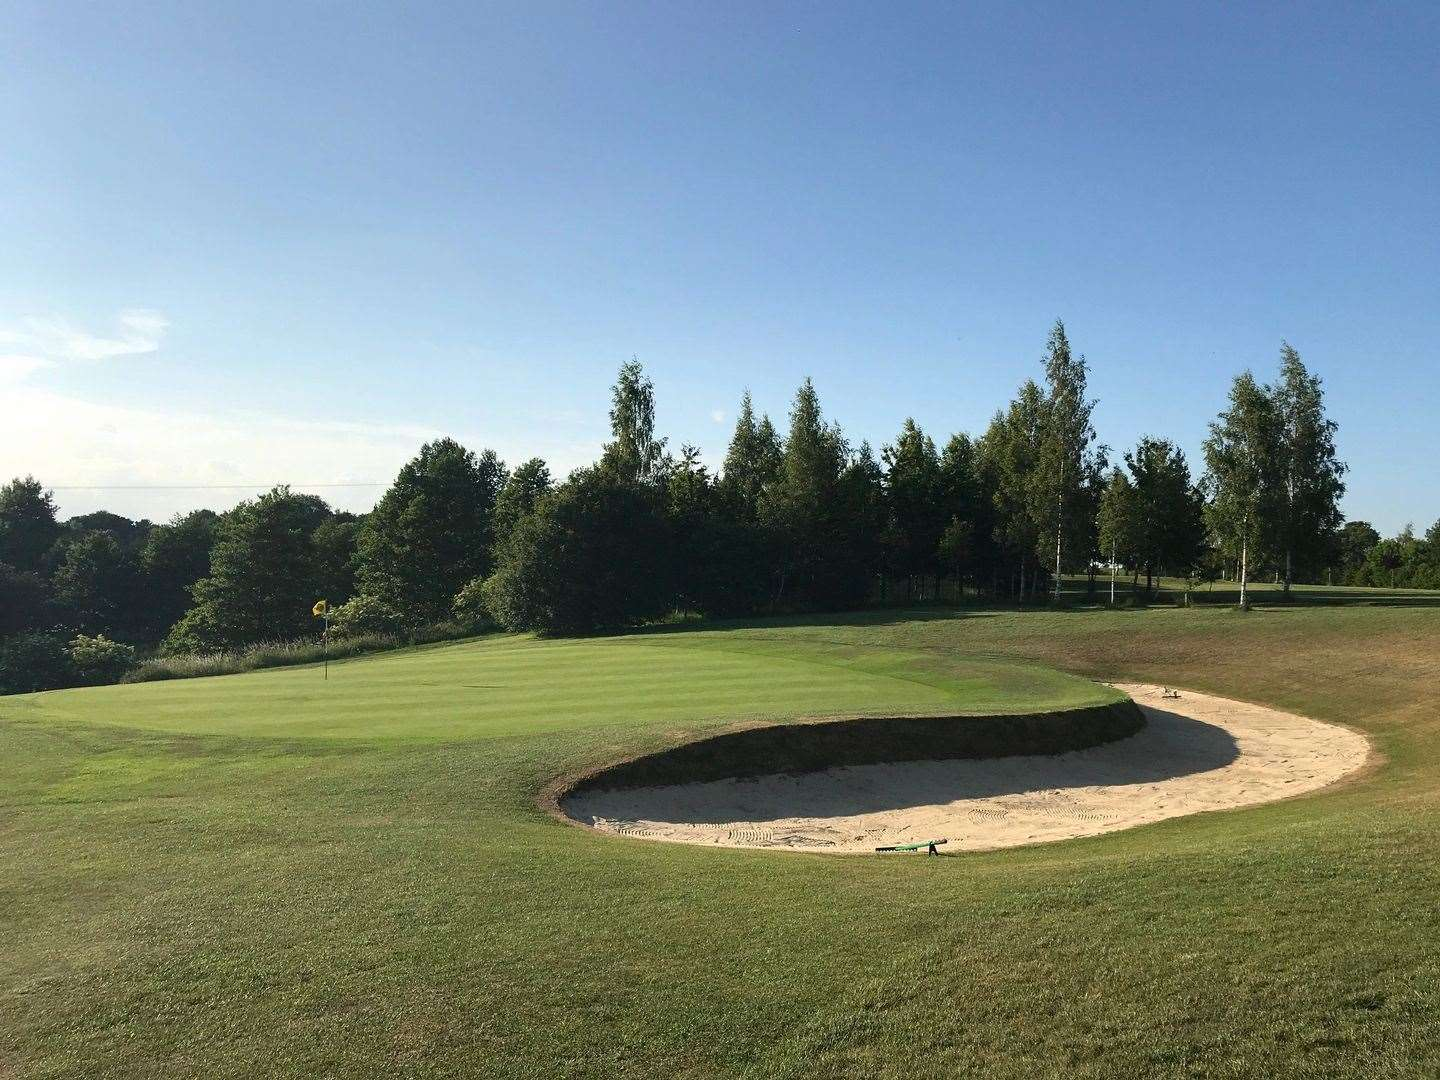 The bunker and green at the eighth hole at Haverhill Golf Club